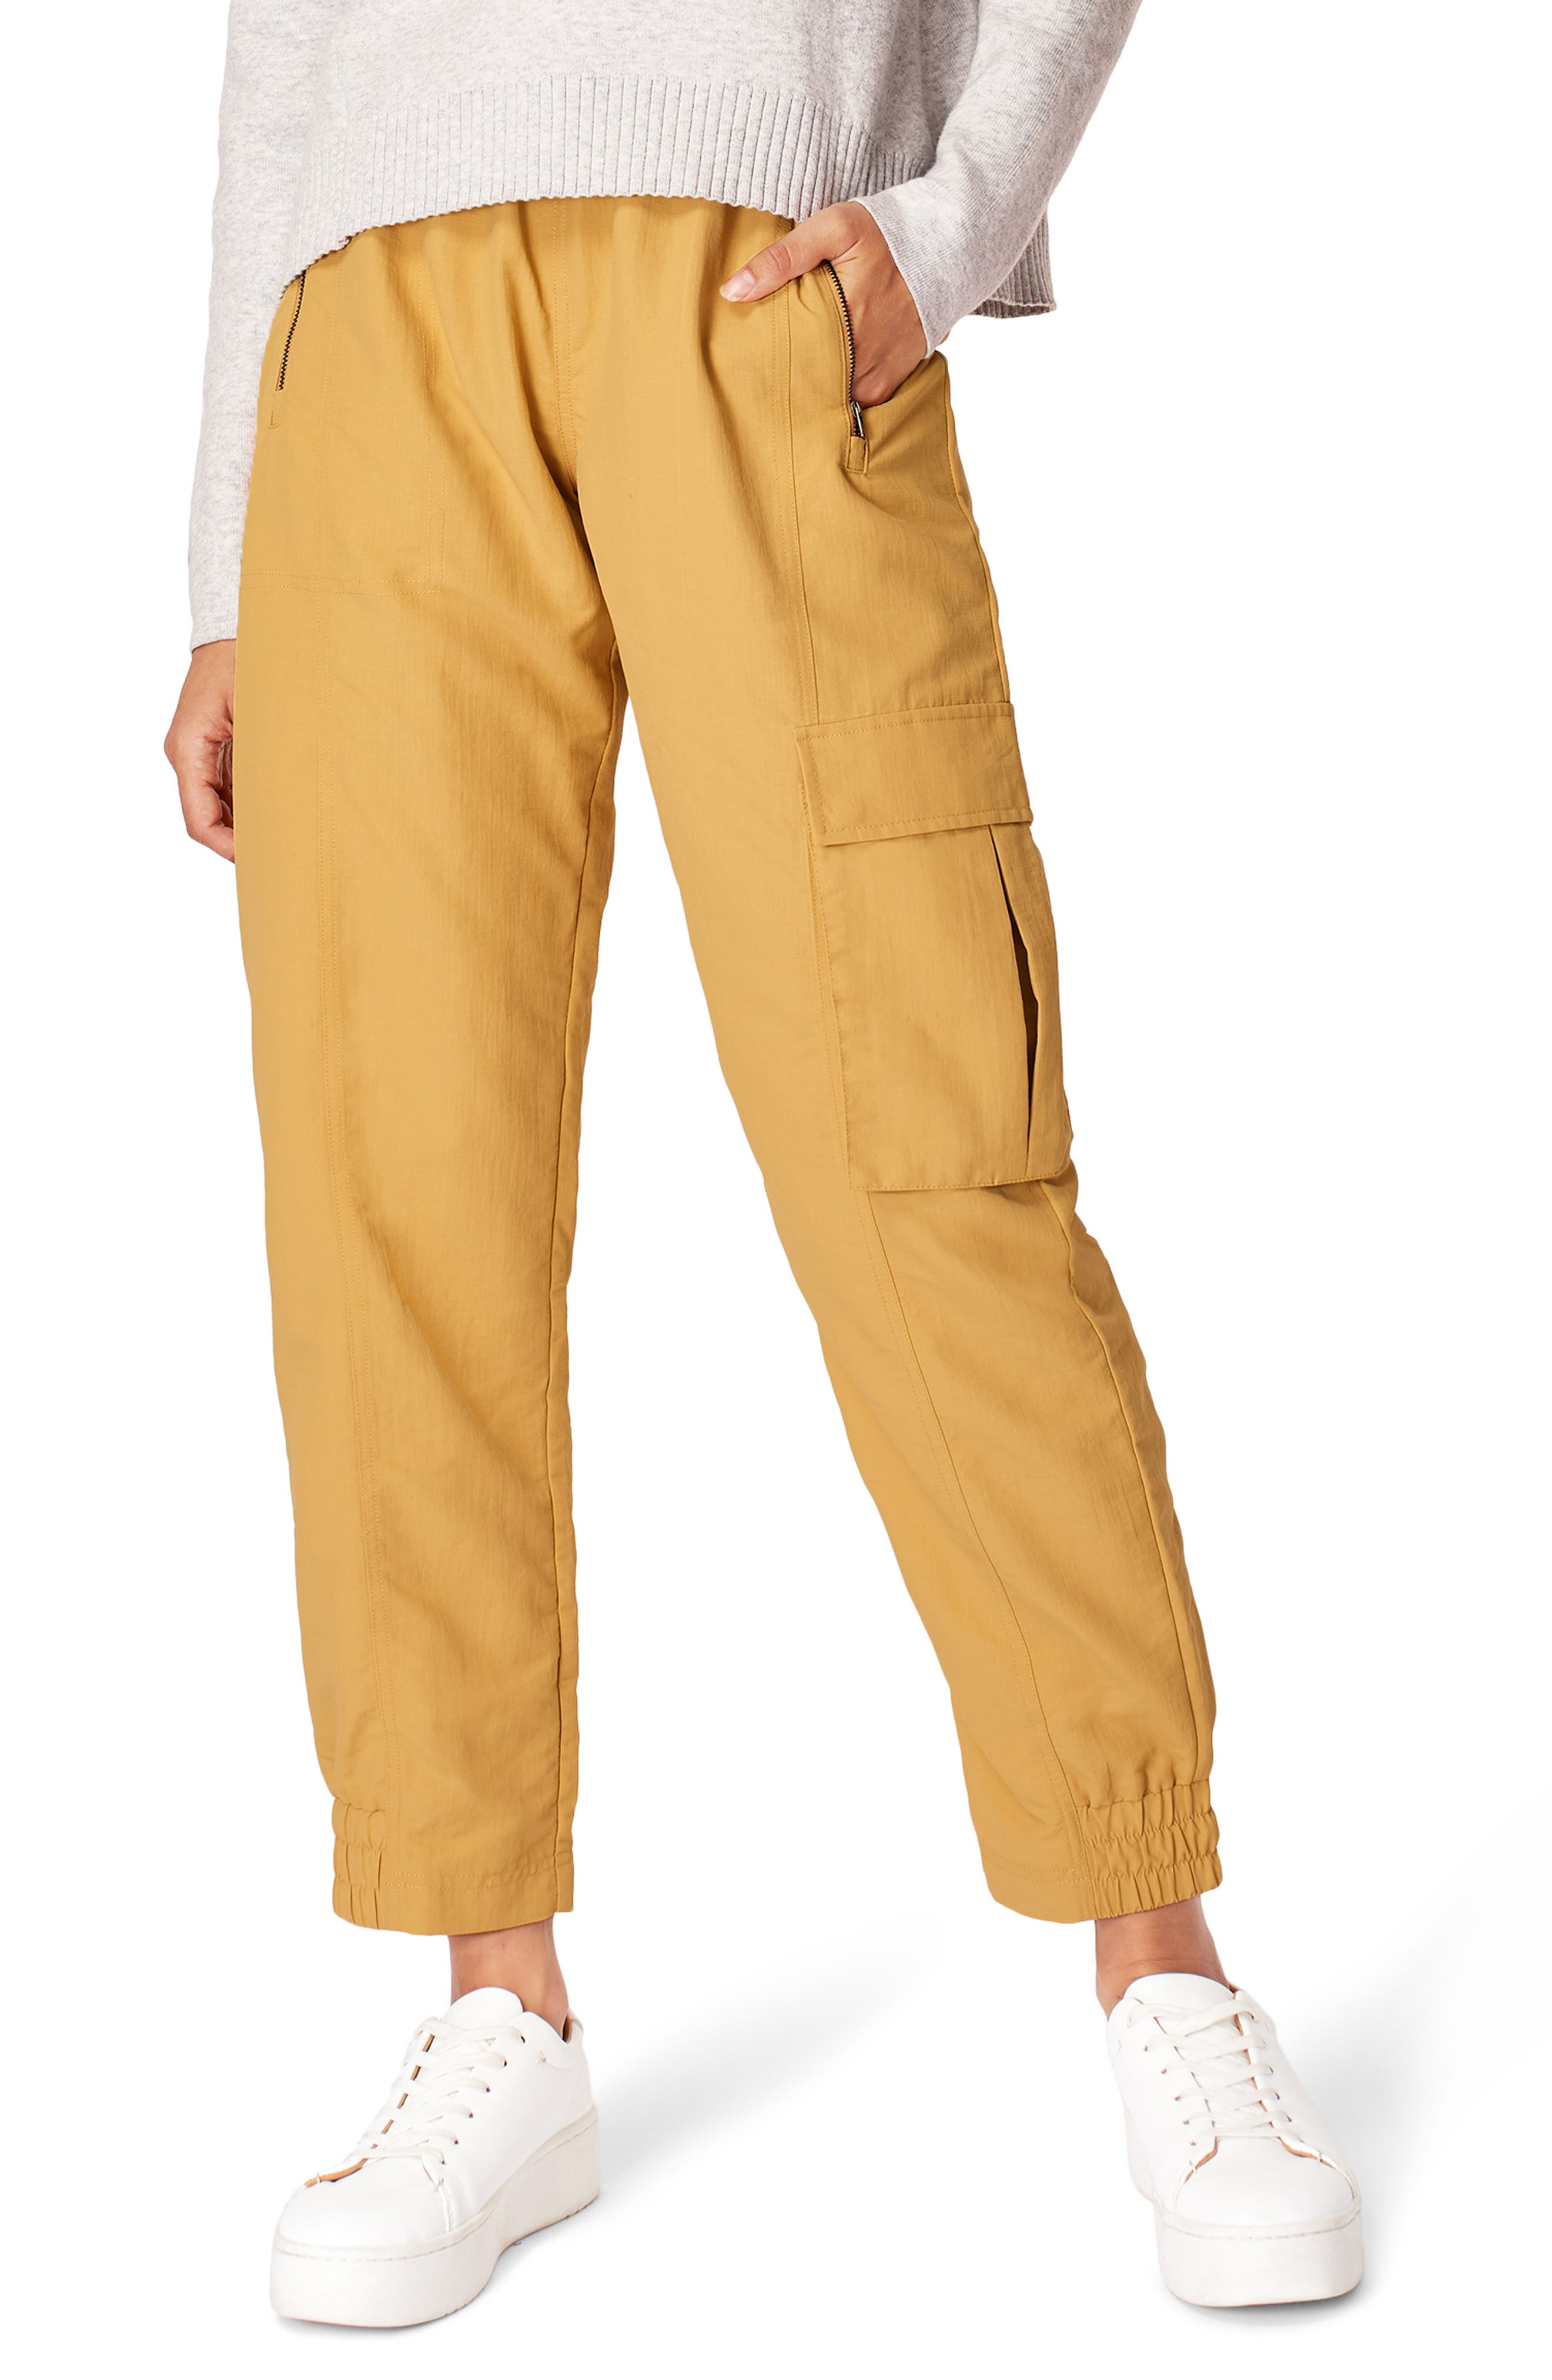 Sweaty Betty Snowdonia Water Resistant Cuffed Hiking Trousers   Nordstrom